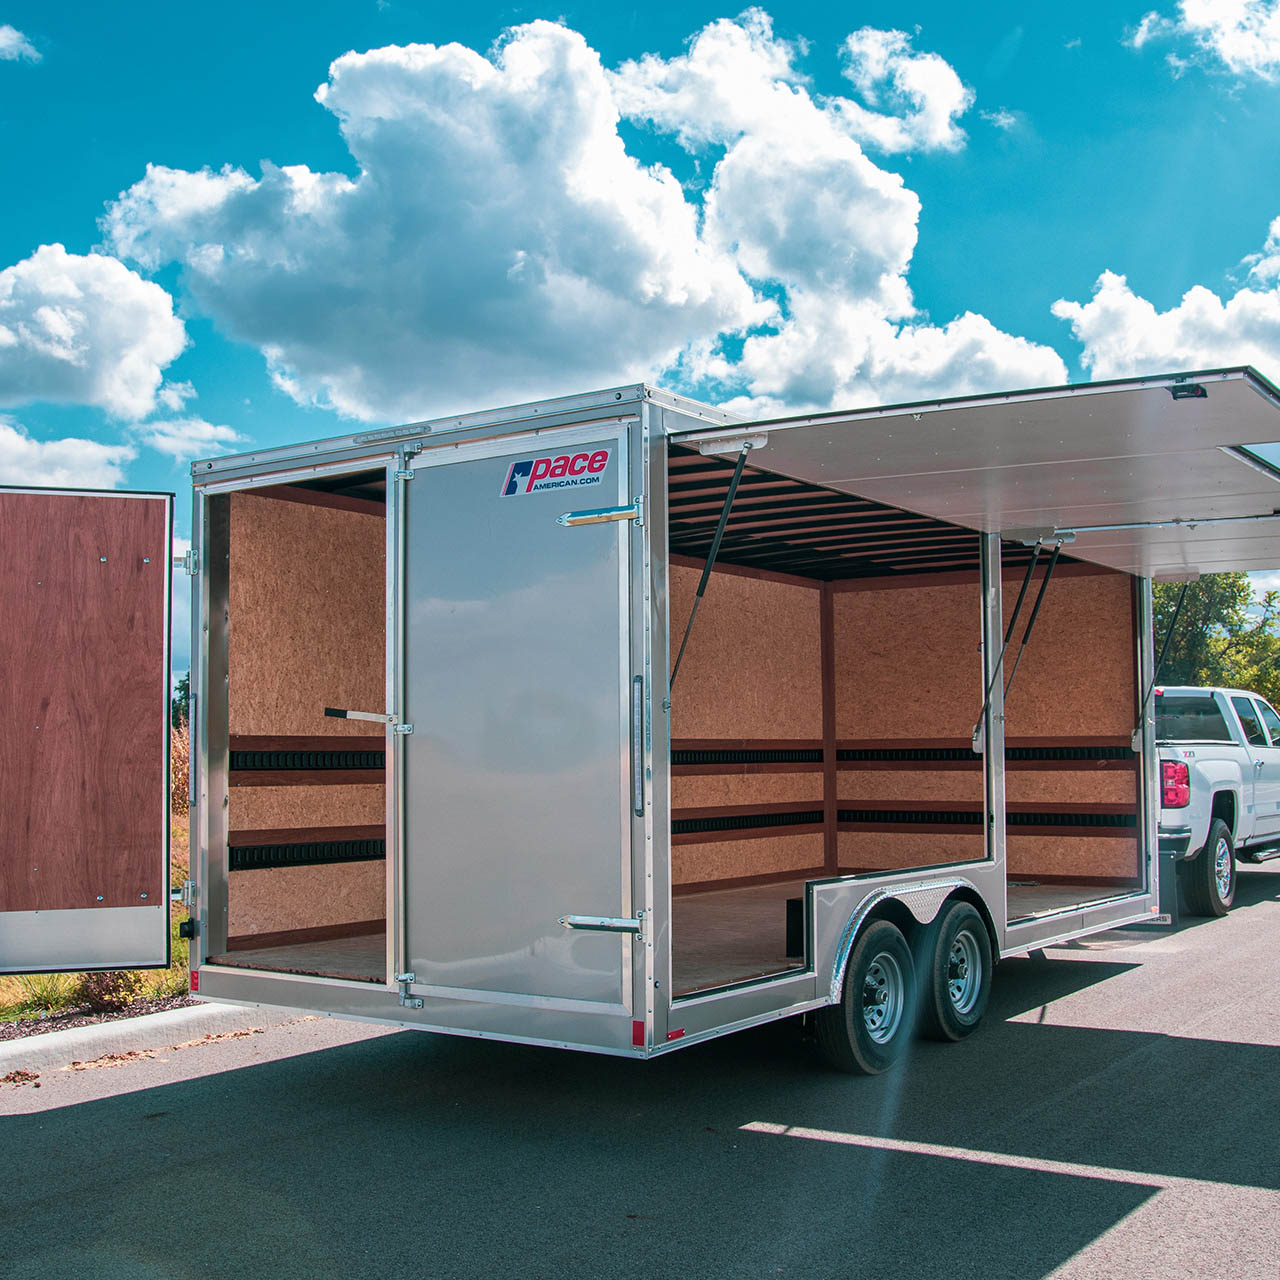 The Concession Package is specifically designed for concessionaires, these trailers serve as the perfect destination for your vending business ventures.